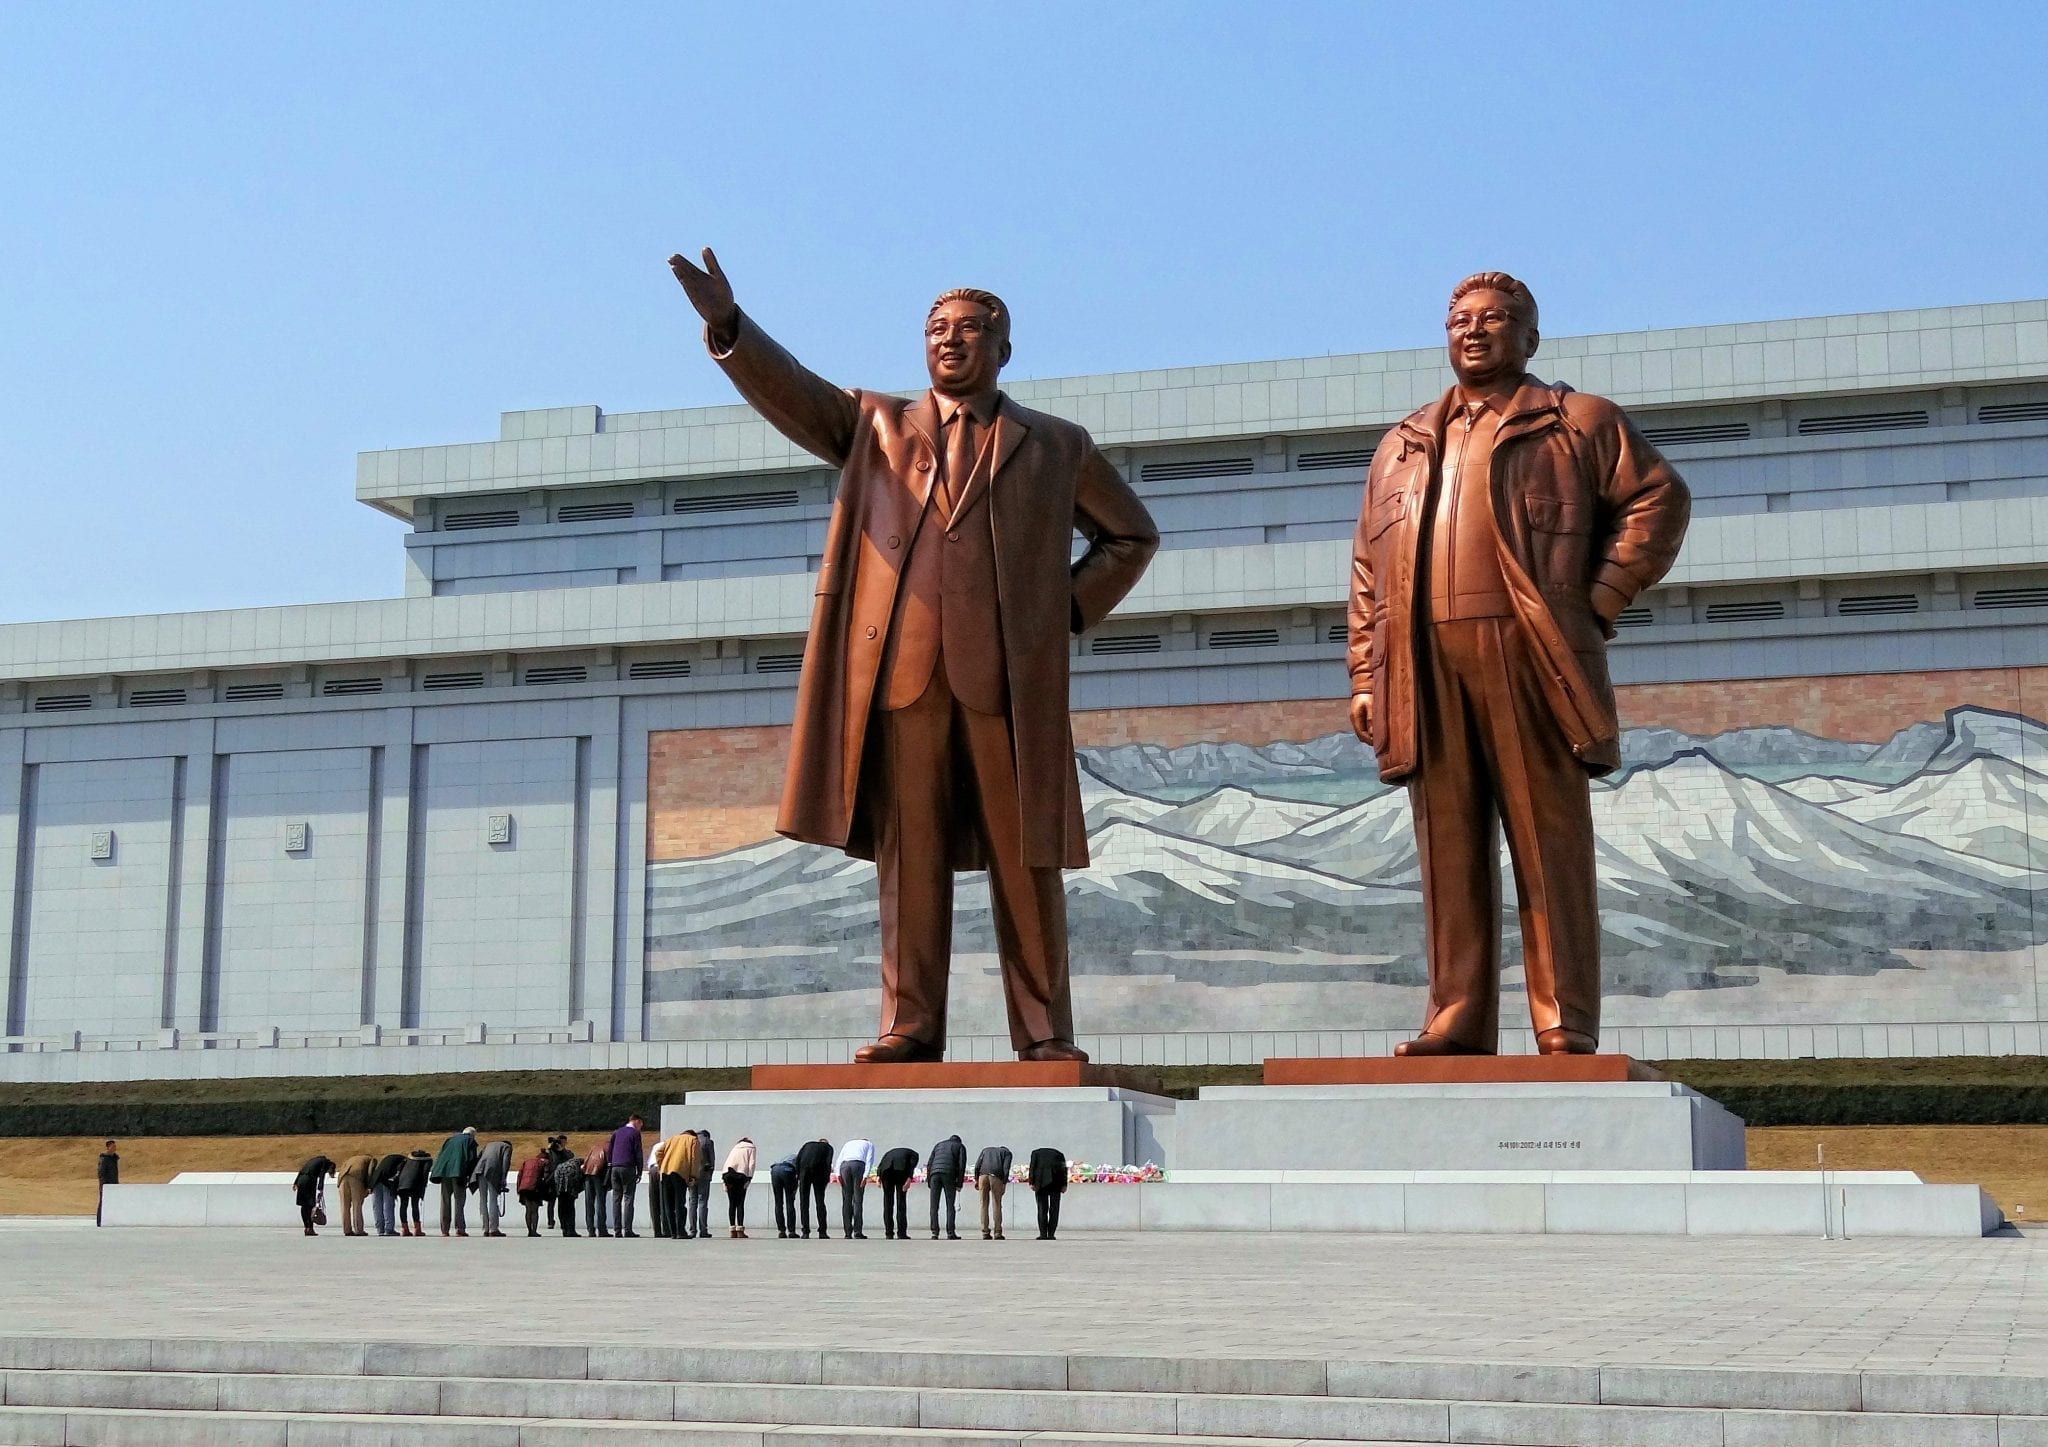 Visitors bowing in a show of respect for North Korean leaders Kim Il-sung and Kim Jong-il on Mansudae (Mansu Hill) in Pyongyang, North Korea; image by Bjørn Christian Tørrissen (Own work), CC BY-SA 3.0, via Wikimedia Commons, no changes.